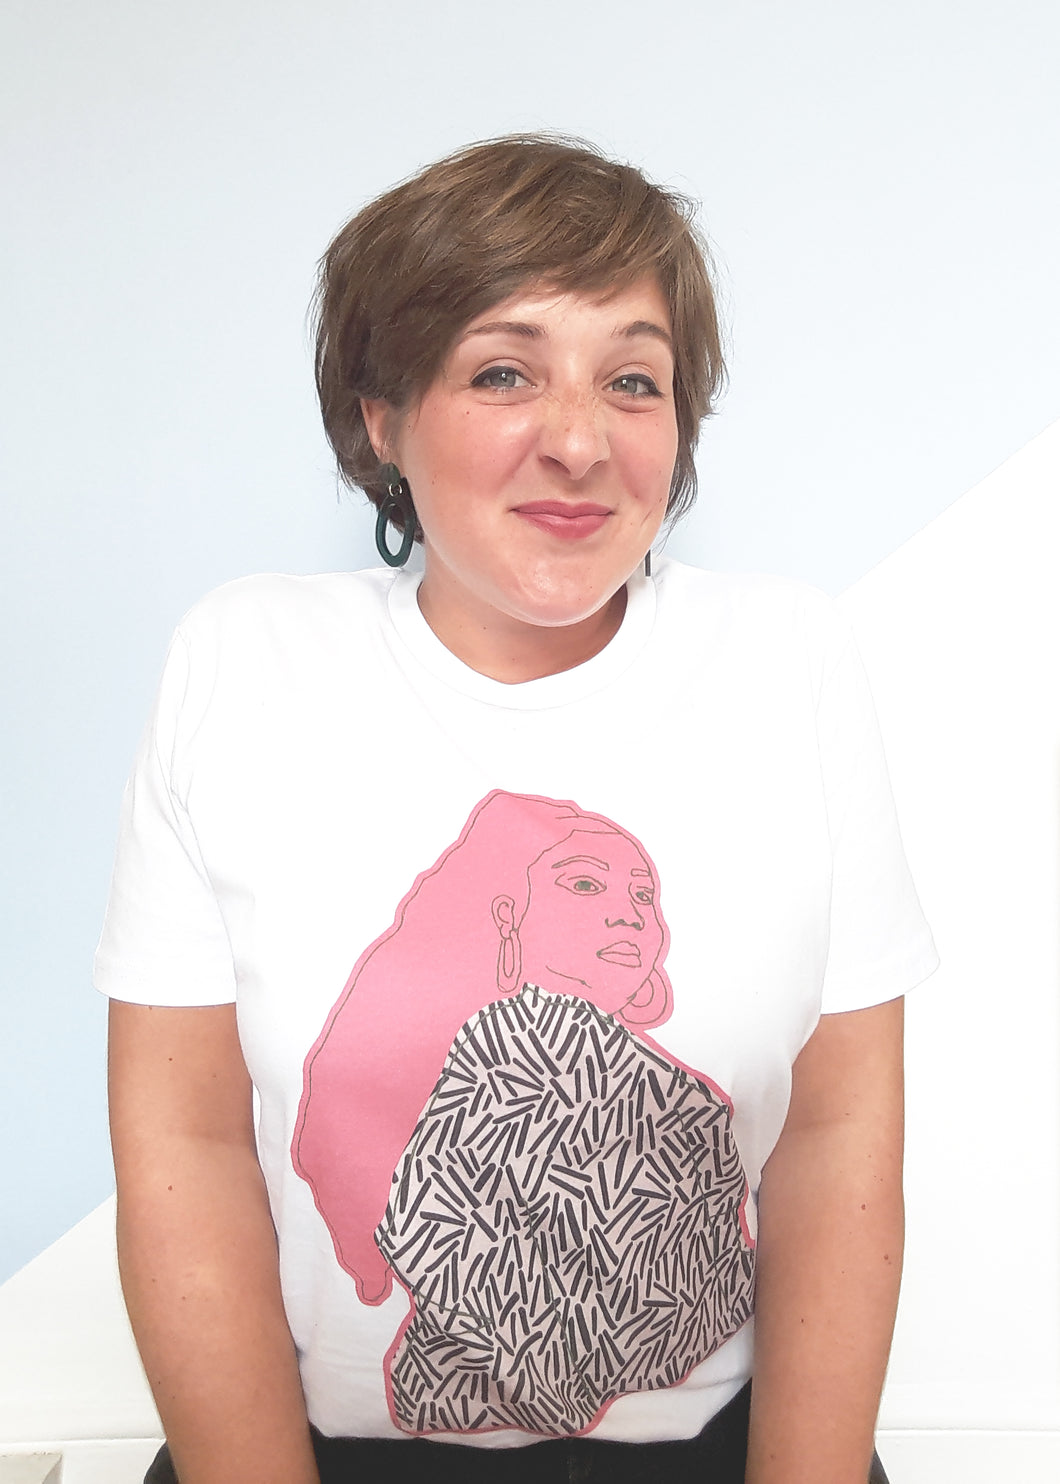 girl pulling cute face wearing white tee with pink Lizzo artwork on by Loaf and Bear